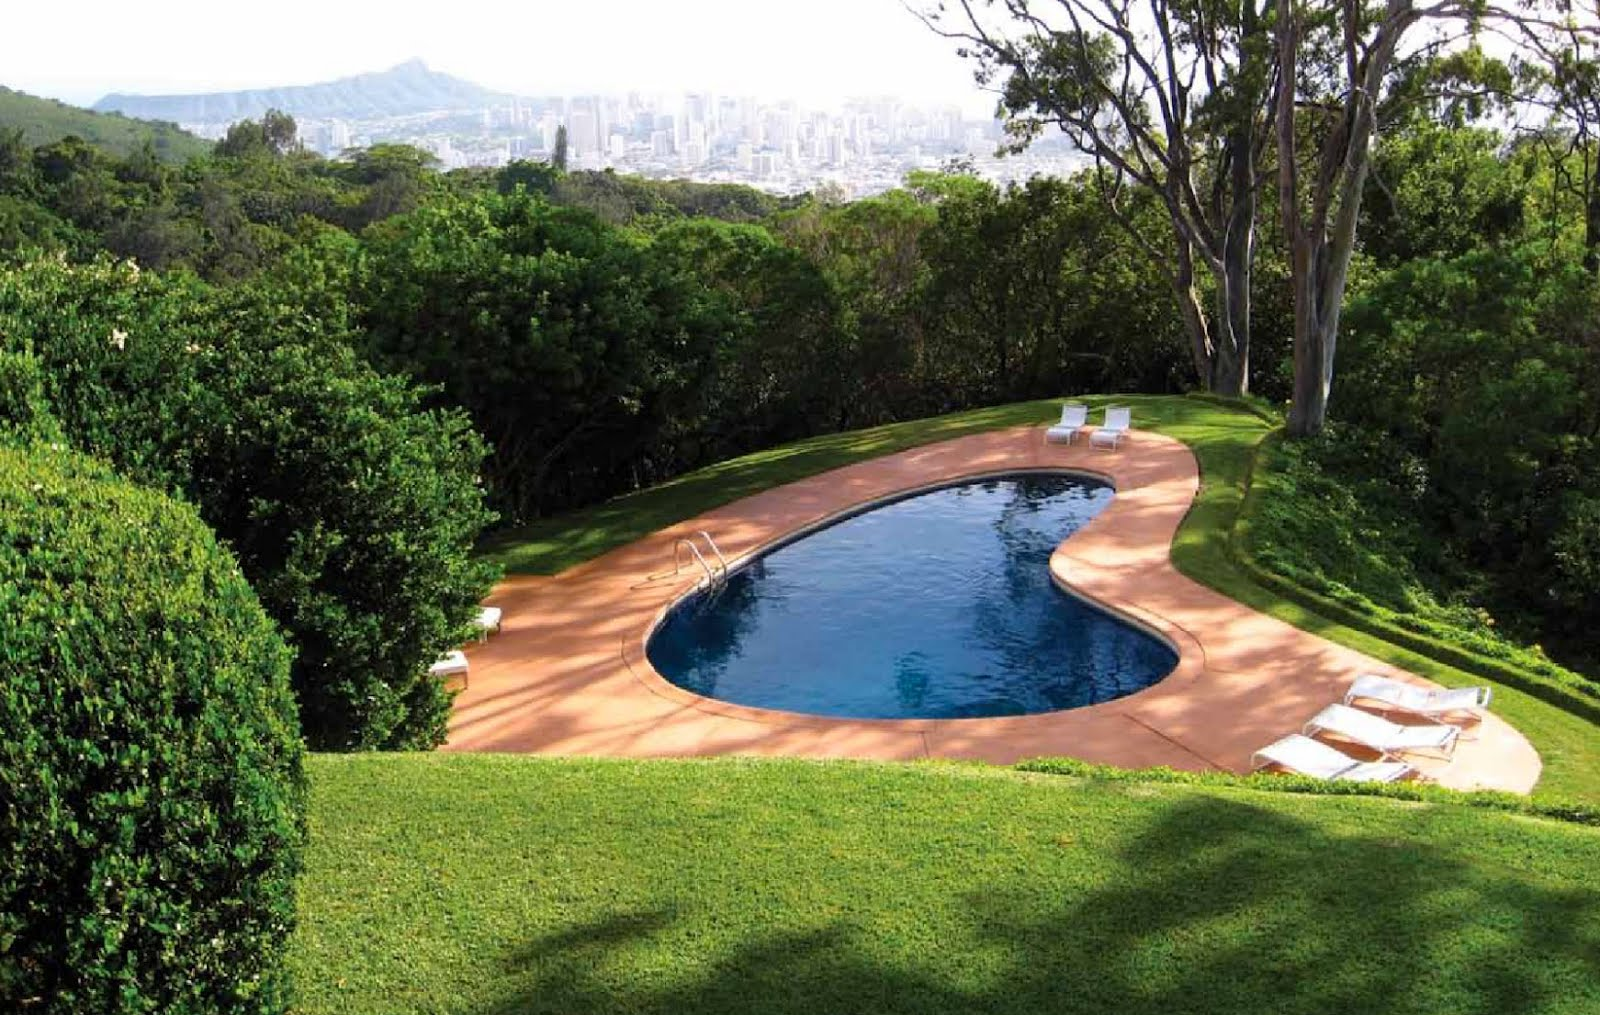 Crazy shape swimming pools modern design by for Pool design 1970